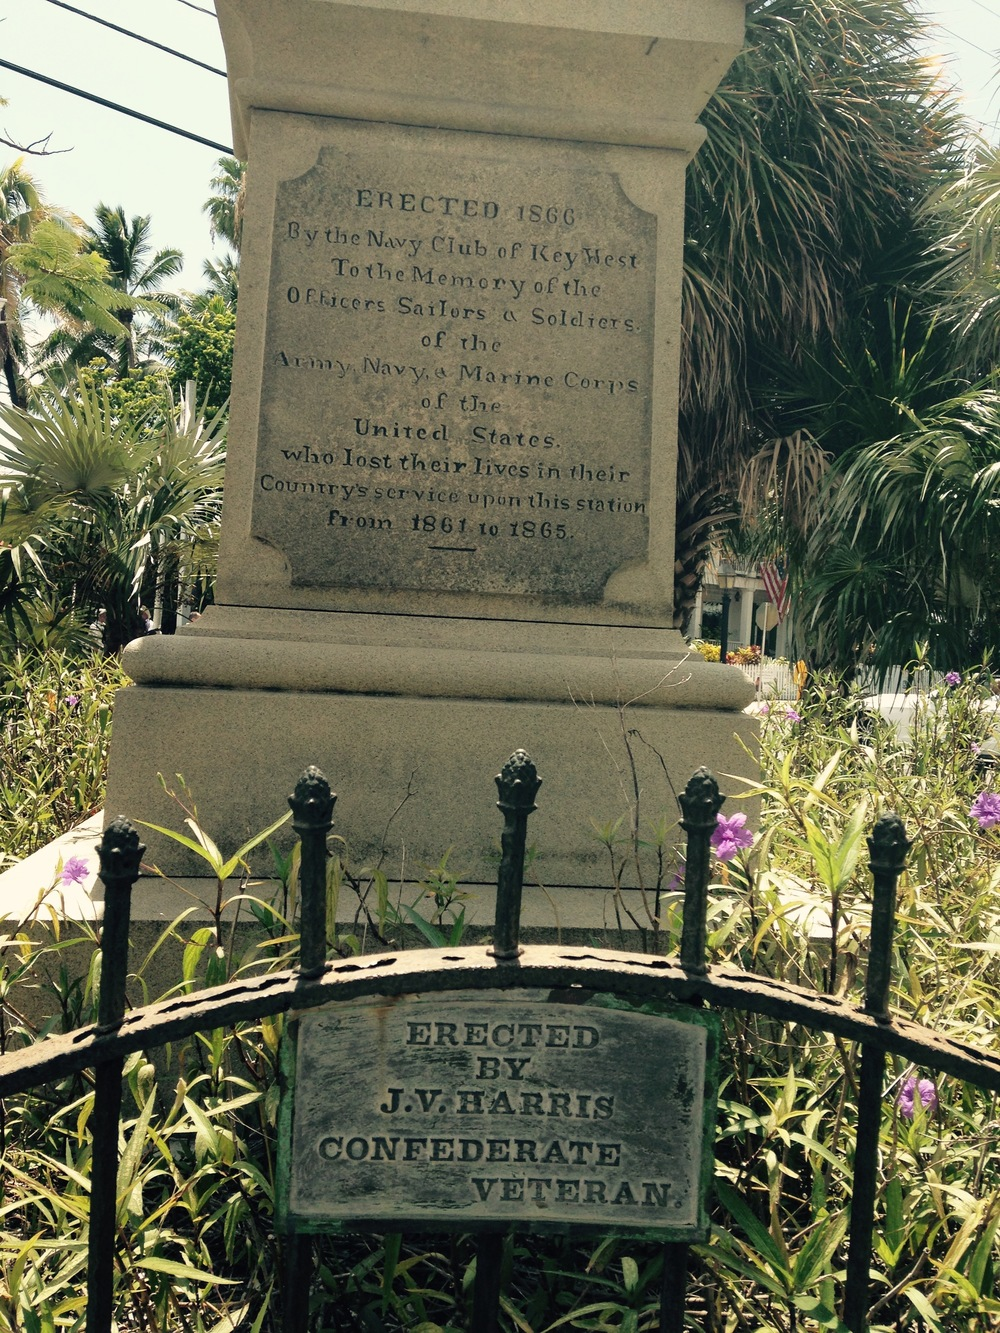 Key West's complicated Civil War legacy is on display at Clinton Place, near Key West Harbor. The obelisk built by the Navy Club for Union forces who died here during the war is surrounded by a cast-iron fence built by a Confederate veteran. Photo by Nancy Klingener.